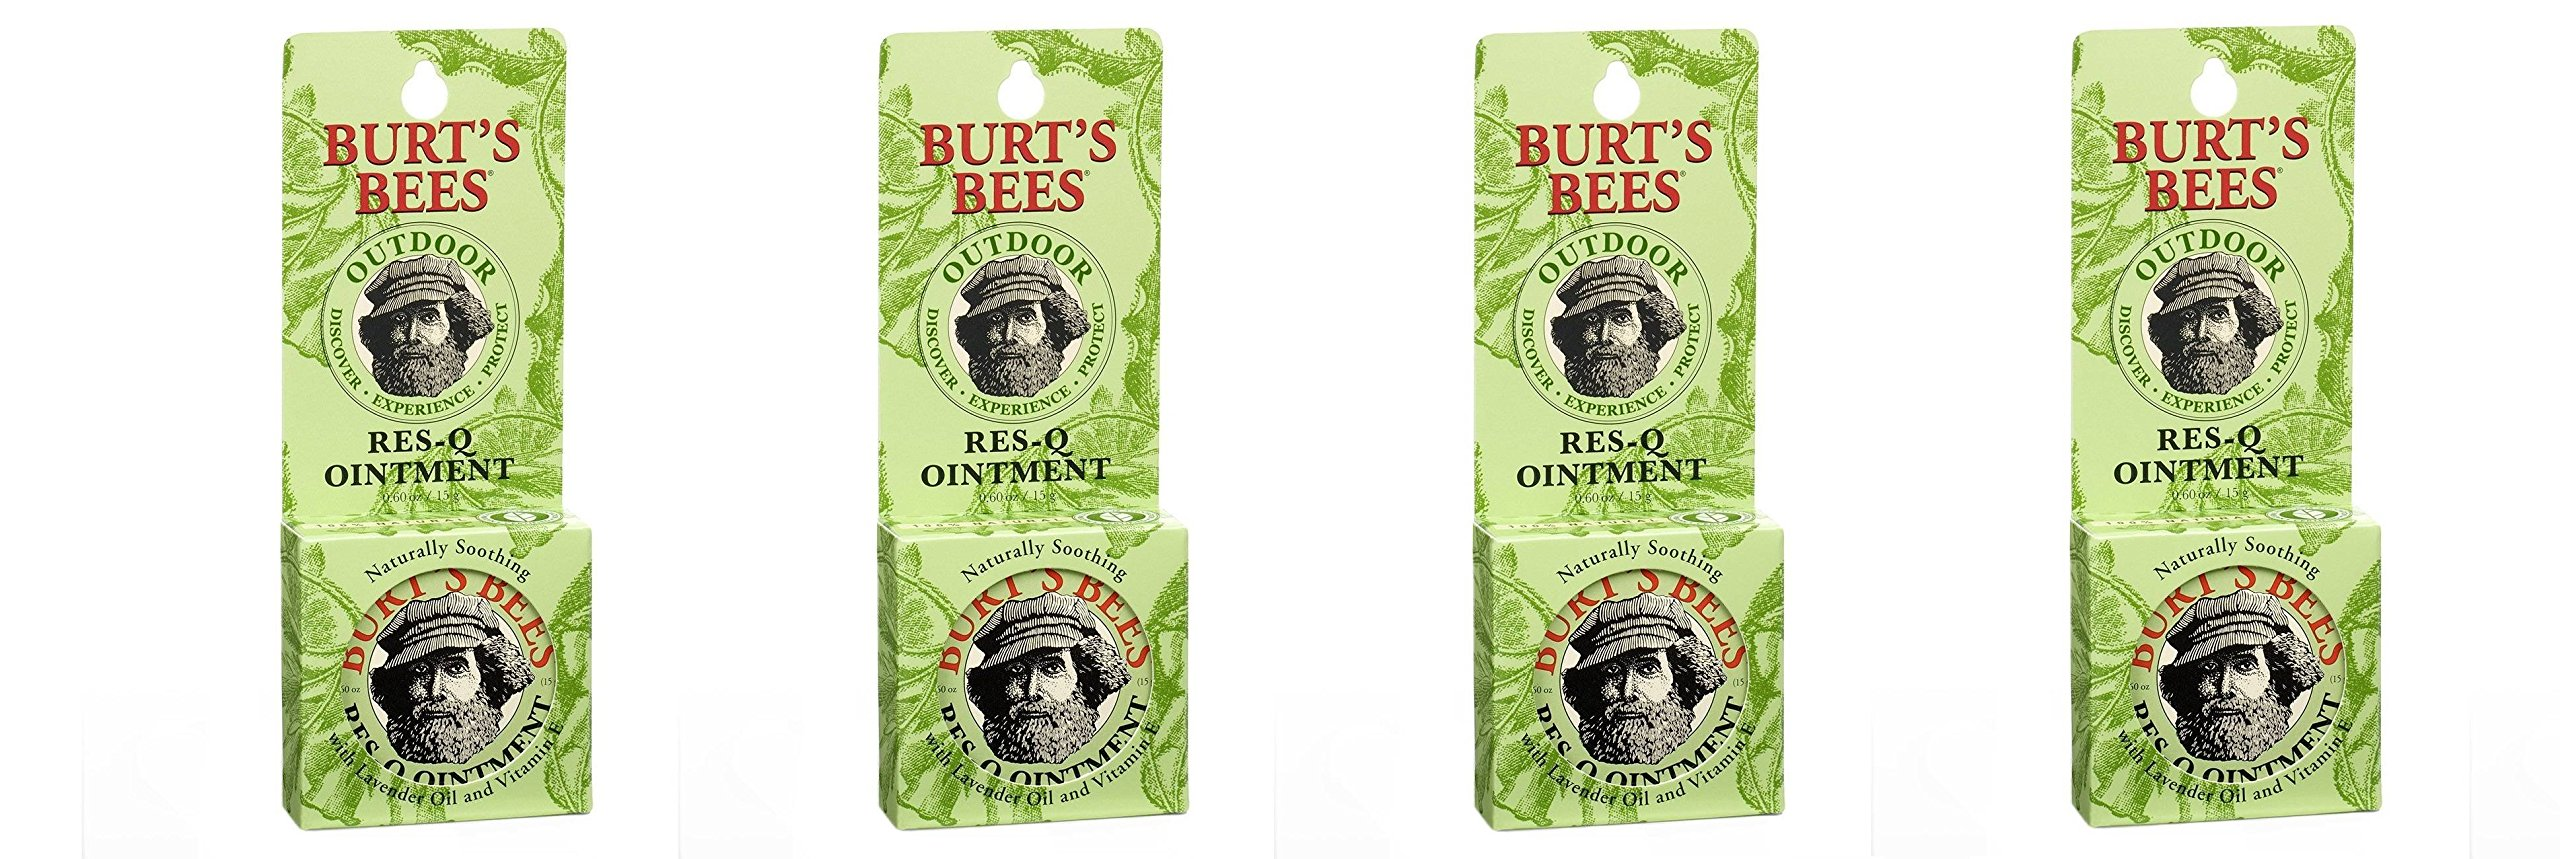 Burts Bees 100% Natural AUJJYF Res-Q Ointment, 0.6 Ounces, 3 Count (Pack of 4)